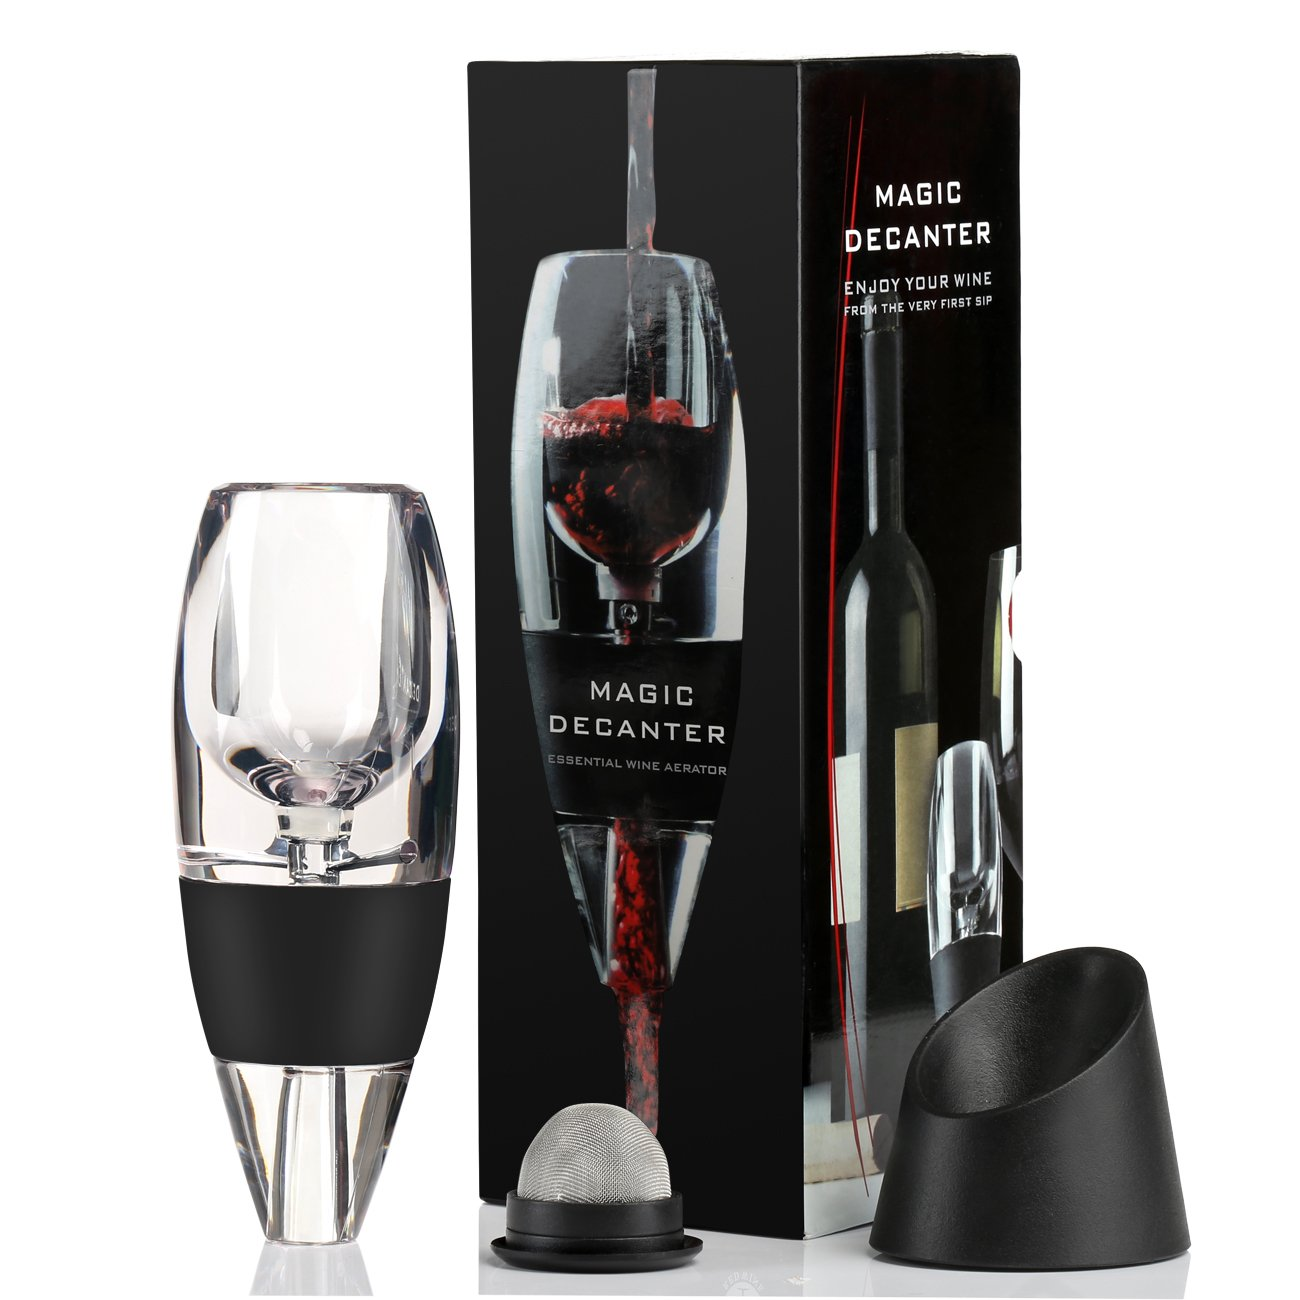 GWHOLE Wine Aerator Decanter with Stand Spout Essential for Wine